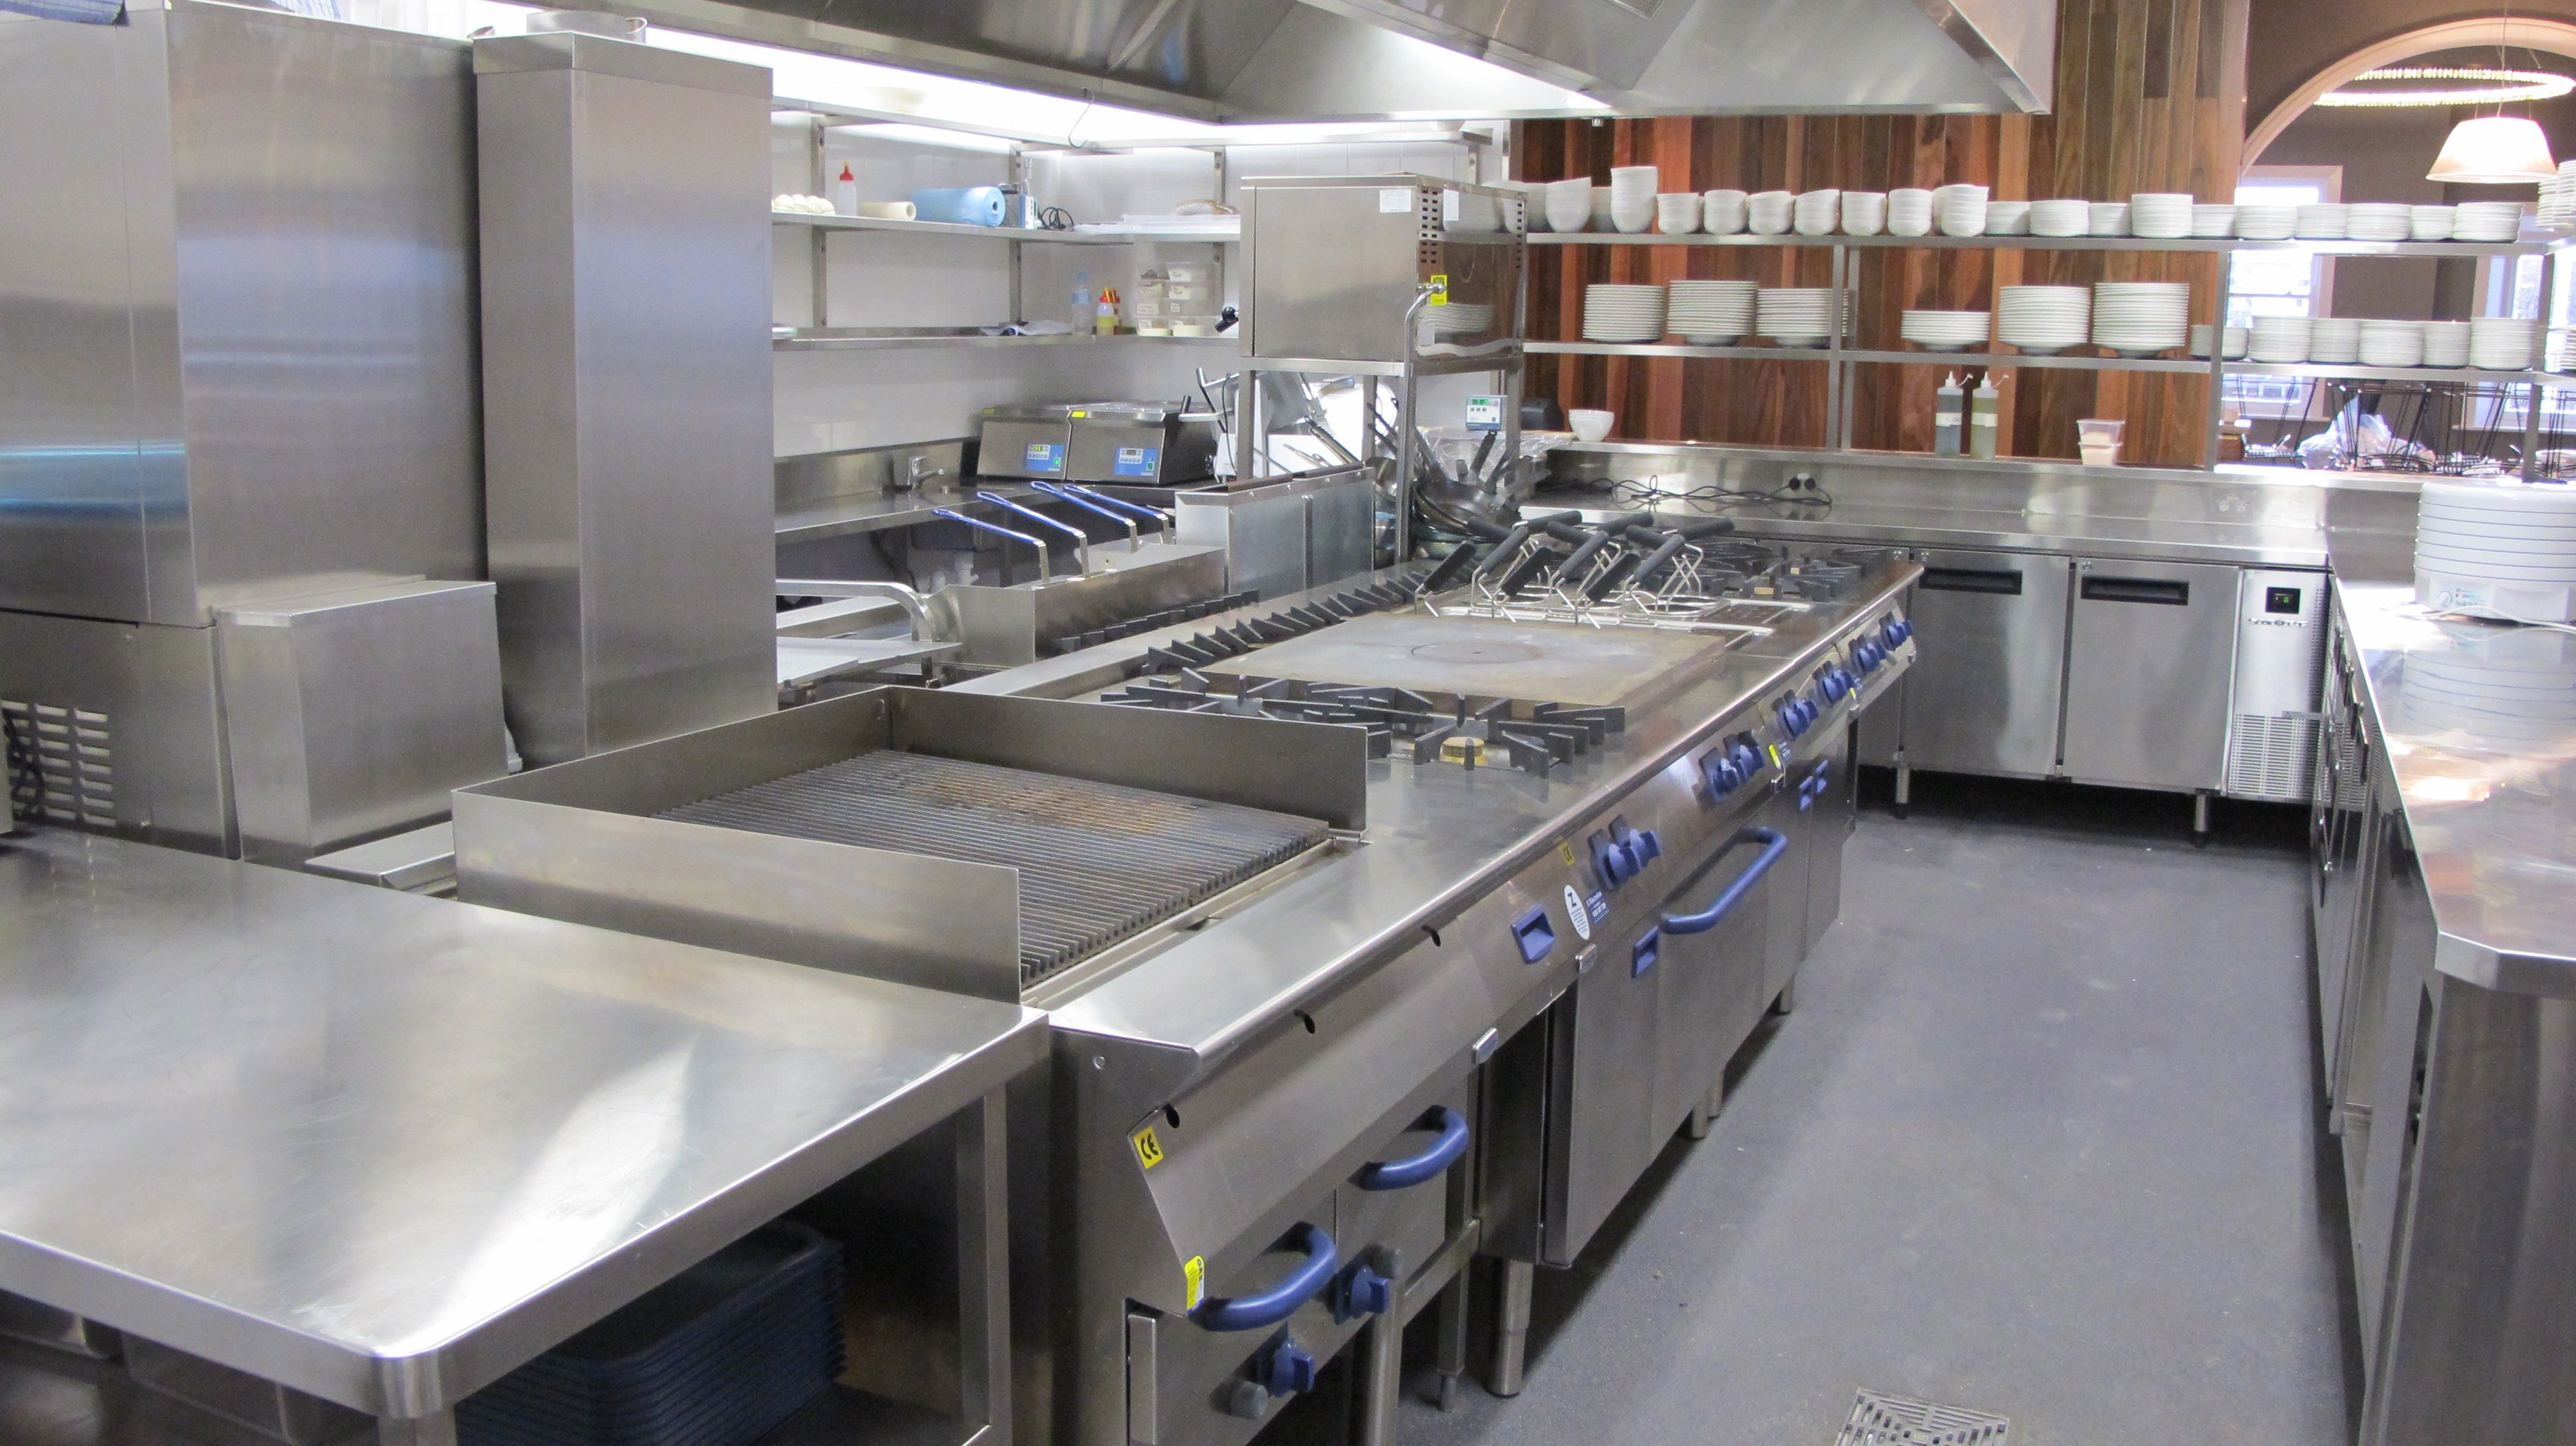 Restaurant Keuken & Deli Commercial Kitchen Equipment Manufacturers In Delhi